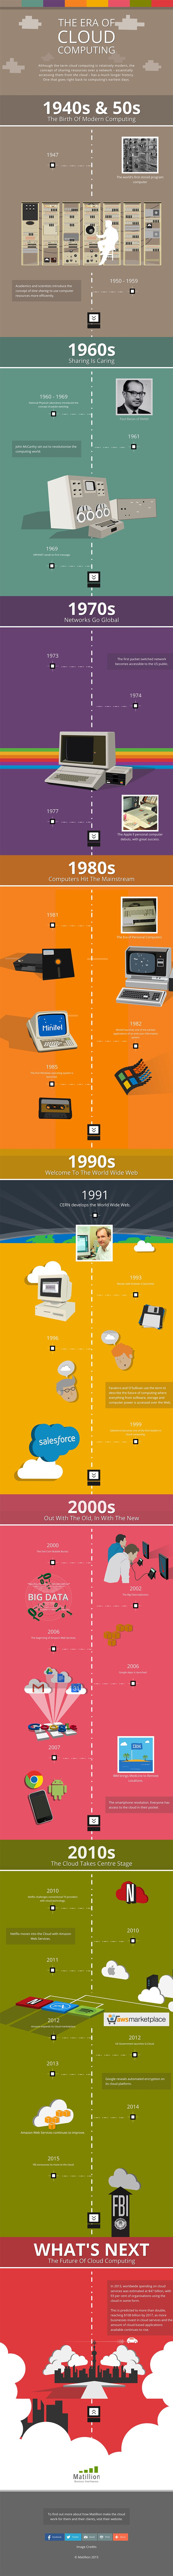 "•iStats: •The Era of Cloud computing: interactive History by Matillion•• from 1947 Birth of Modern Computing to 1960s sharing (""packet switching"") to 1980s PC mainstream & France's Minitel to 1990s wWw (1st page 1991 Aug6 thanks to Sir Tim Berners-Lee at CERN + Steve Jobs' NeXT server) to 2000s web 2.0 to 2010s cloud to the Future"